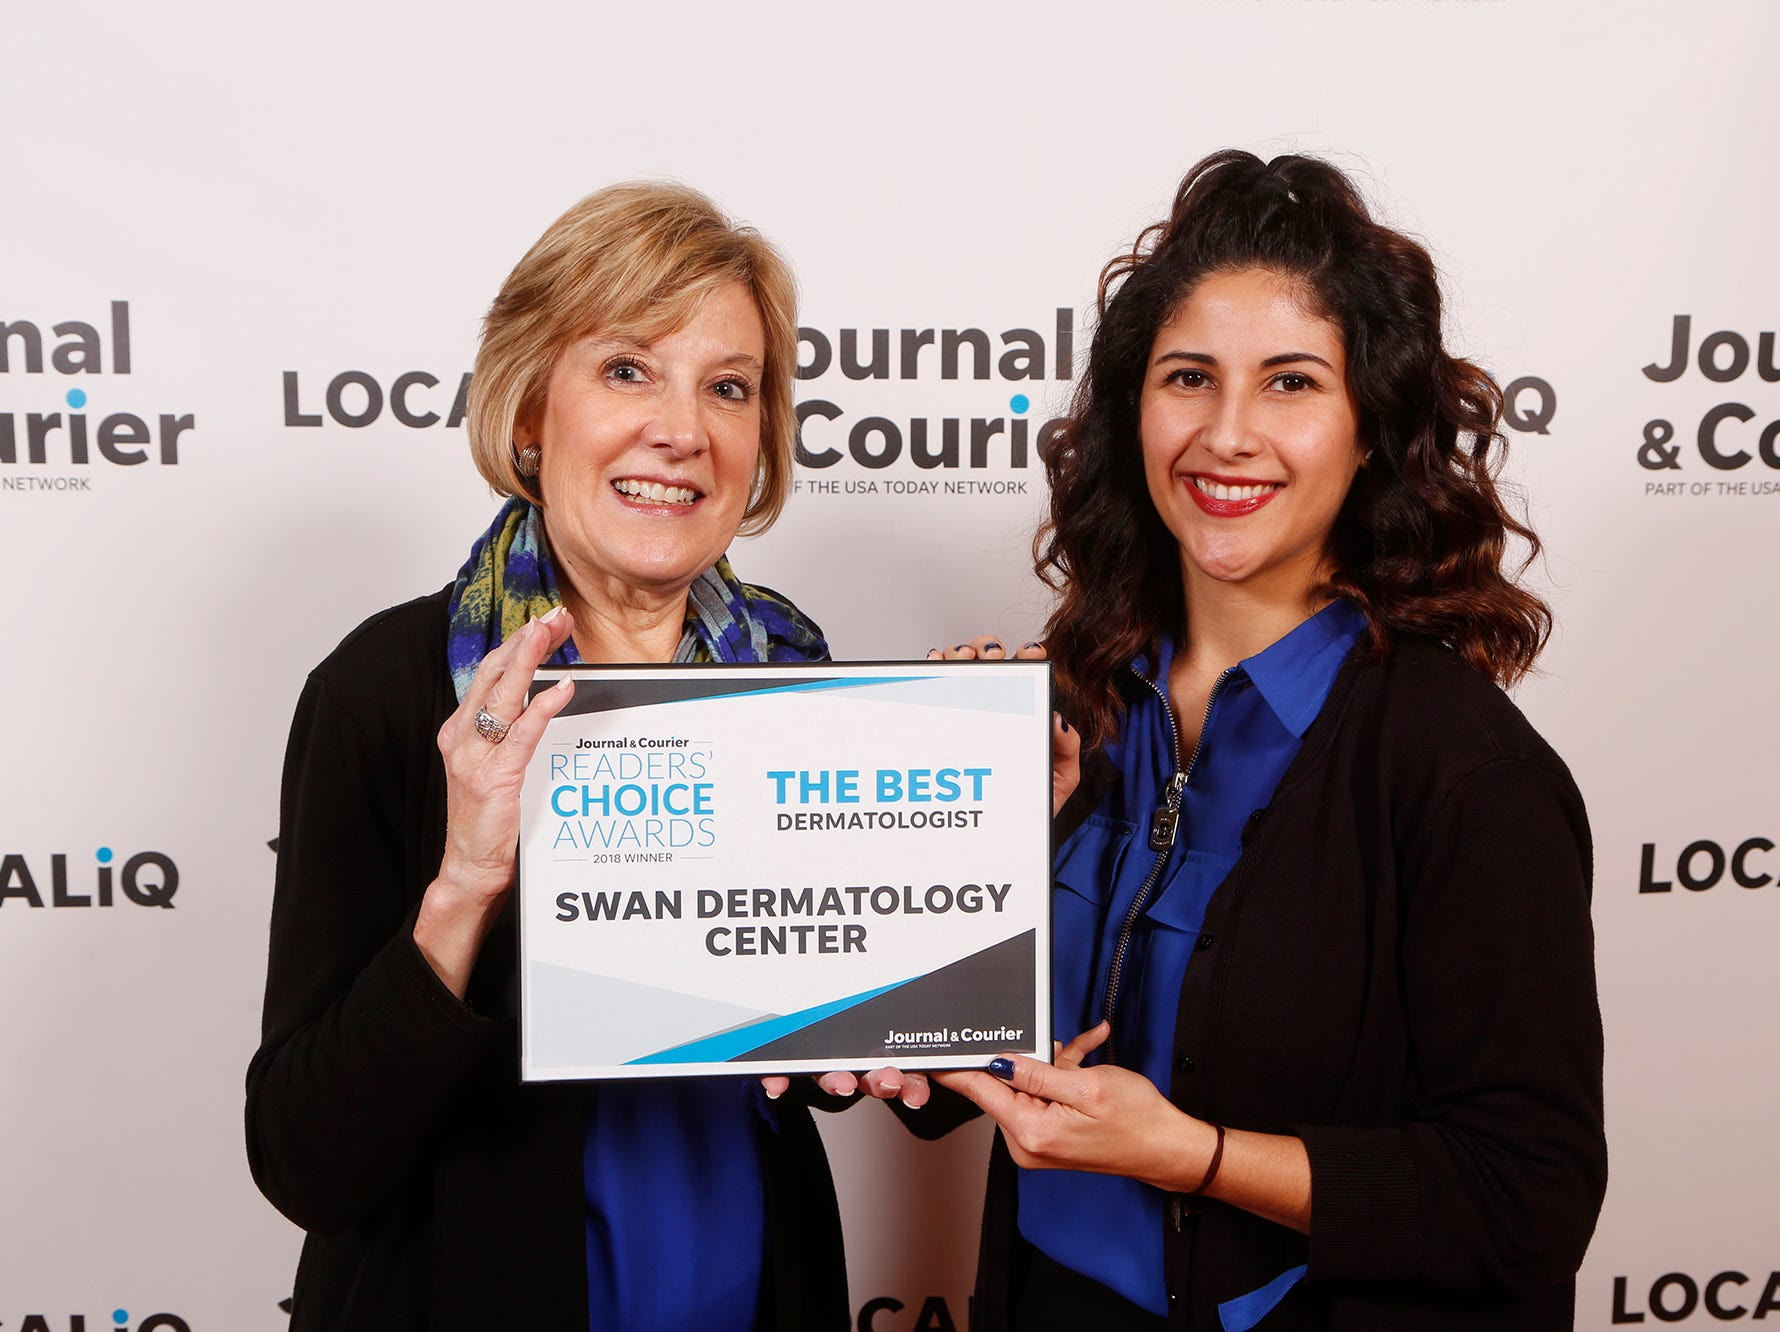 Swan Dermatology Center, Journal & Courier Readers' Choice Awards winner for the best dermatologist.